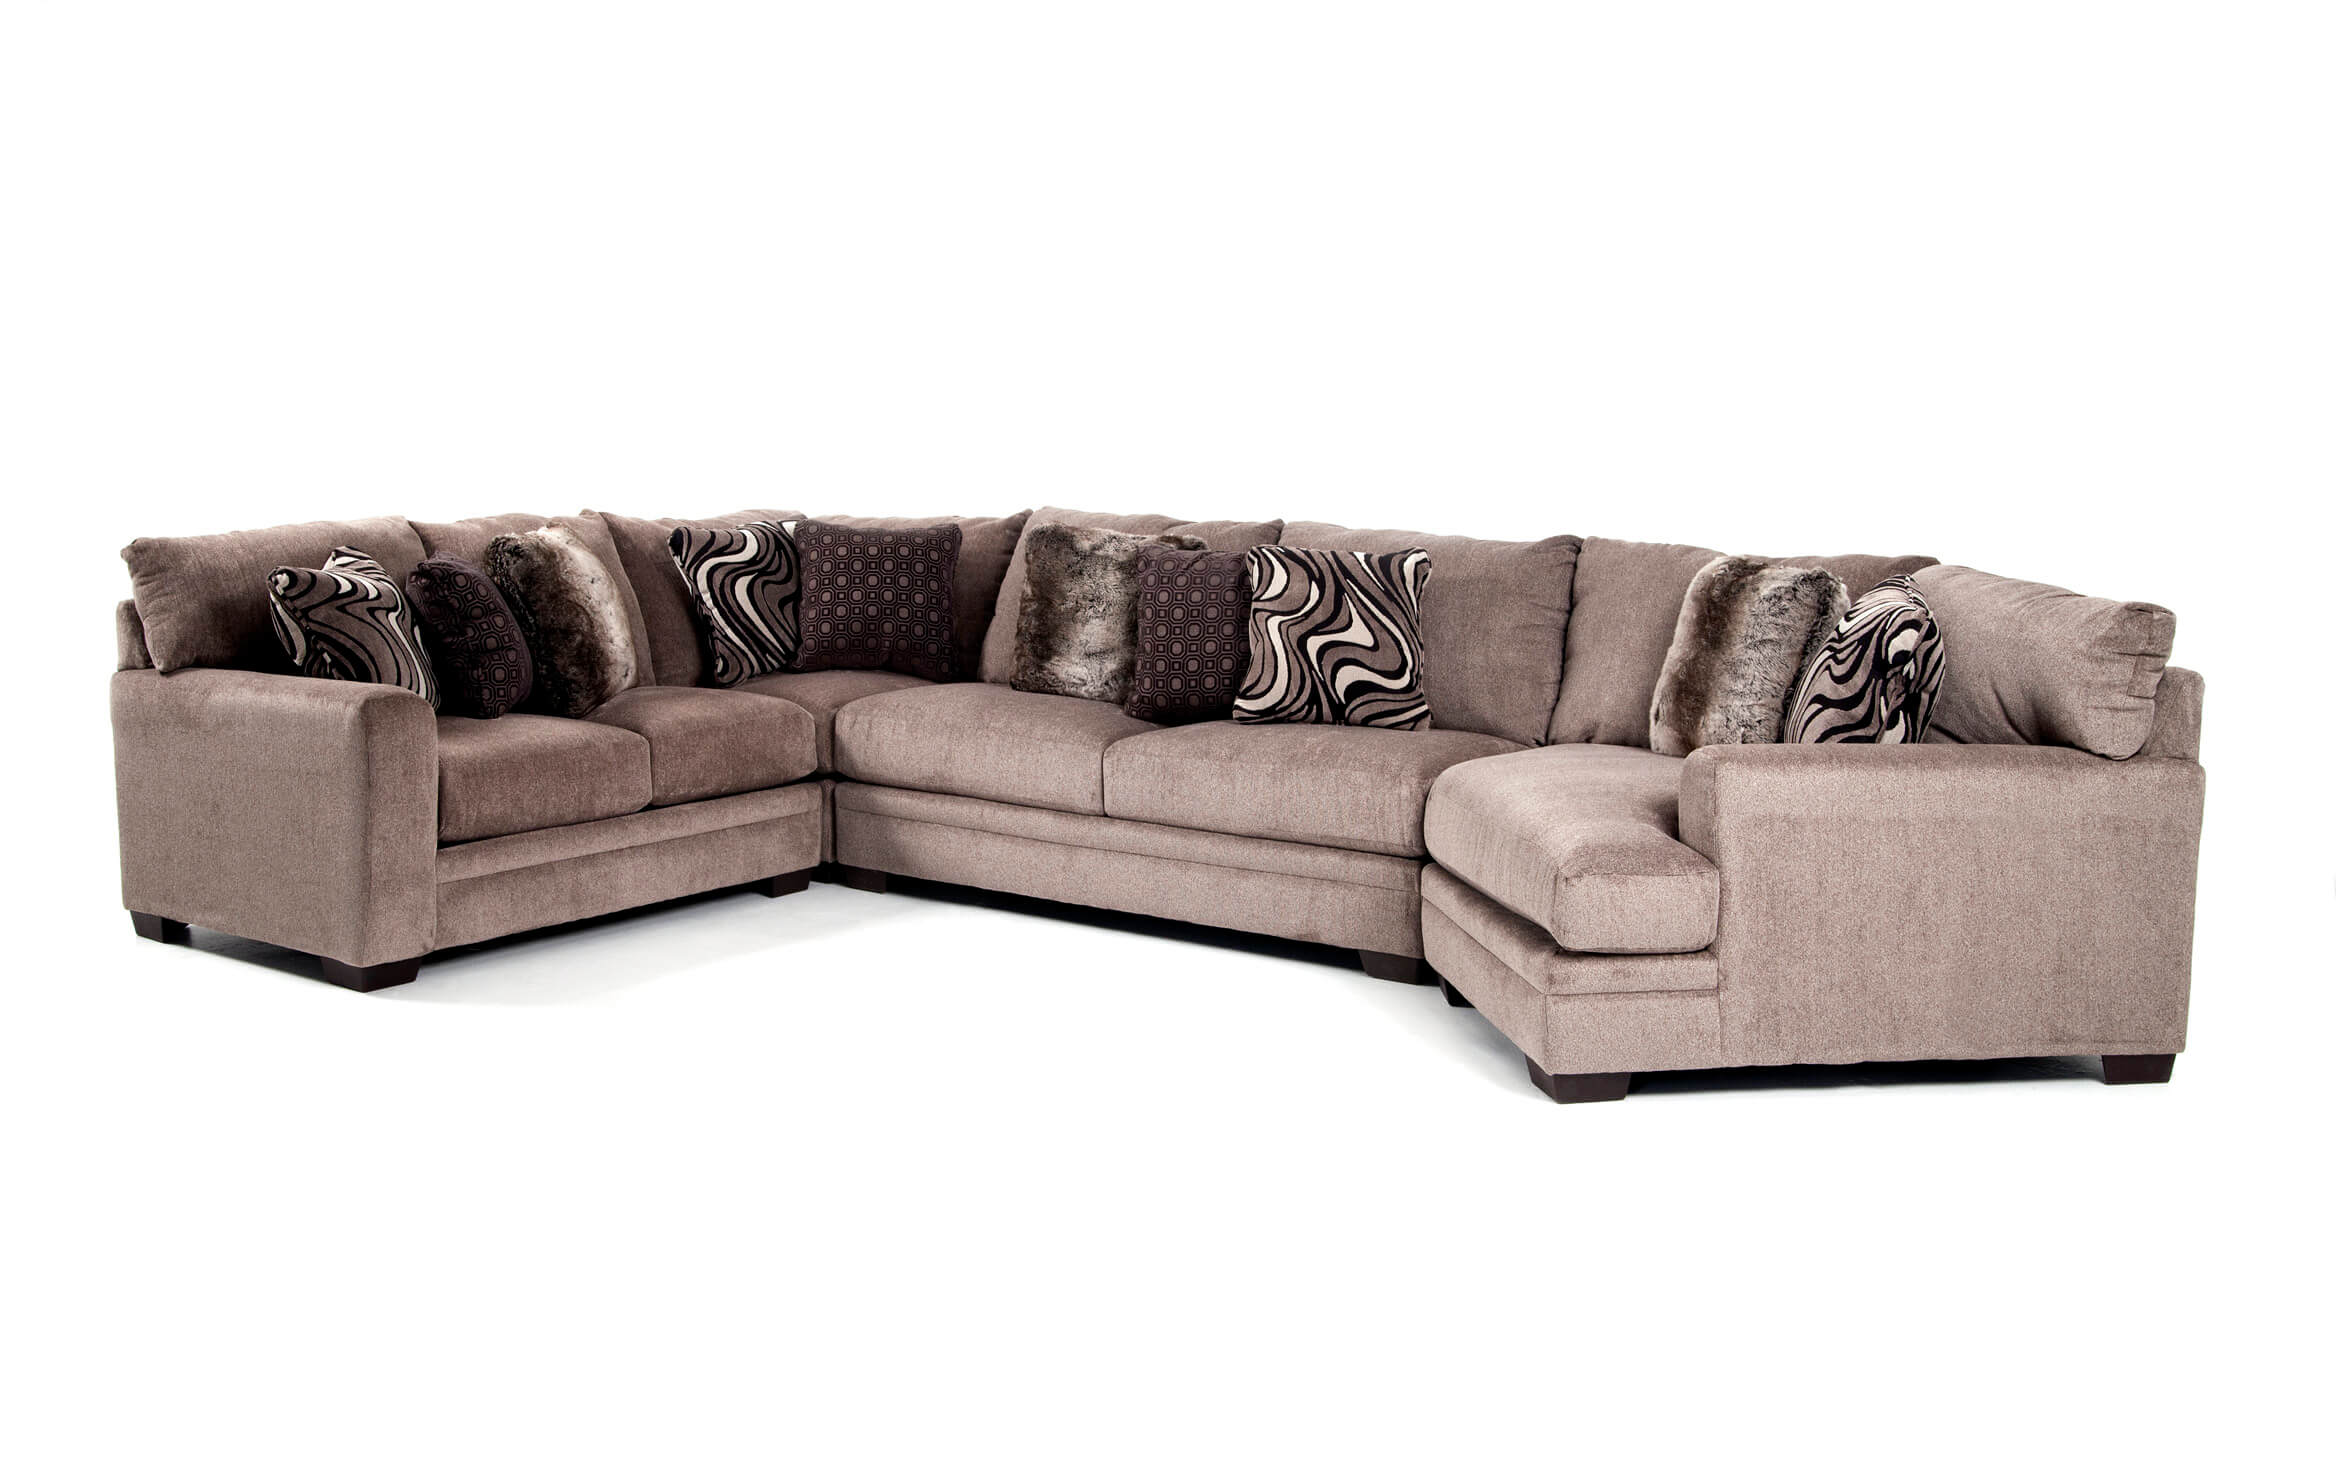 Sofa With Cuddler Furniture Wedport 3 Pc Fabric Sofa ...